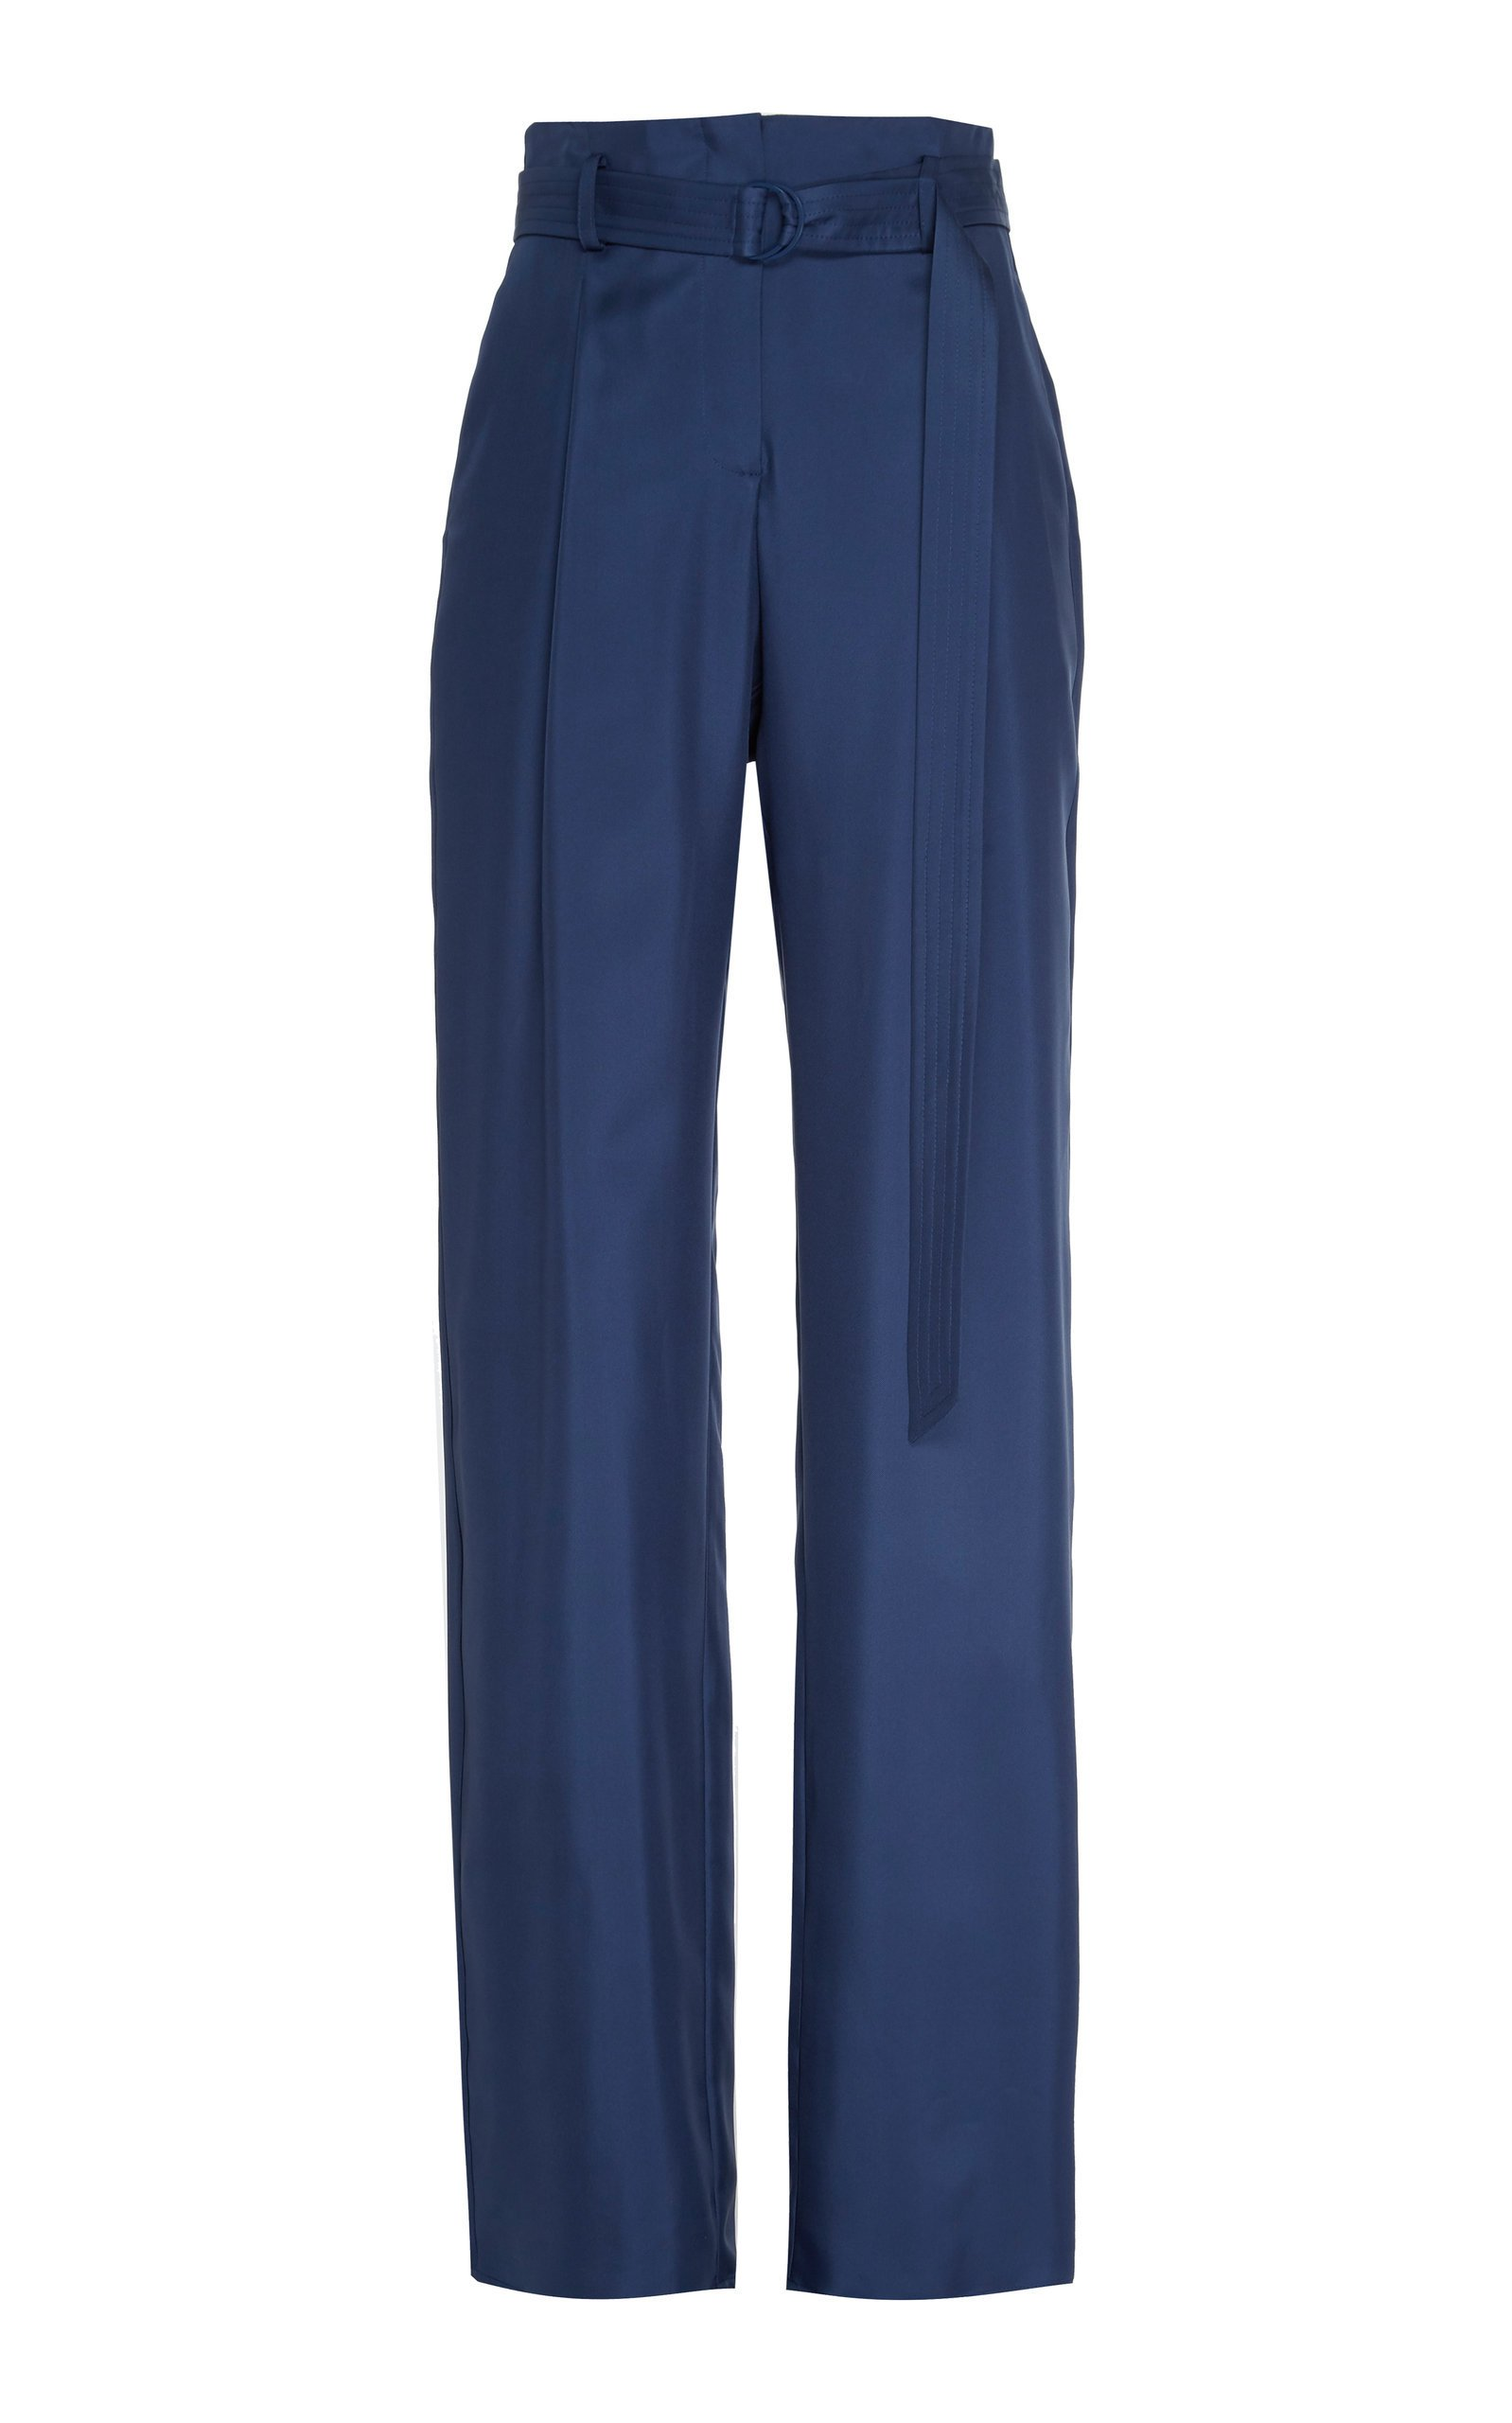 Sally LaPointe Silky Twill High Waisted Belted Pant